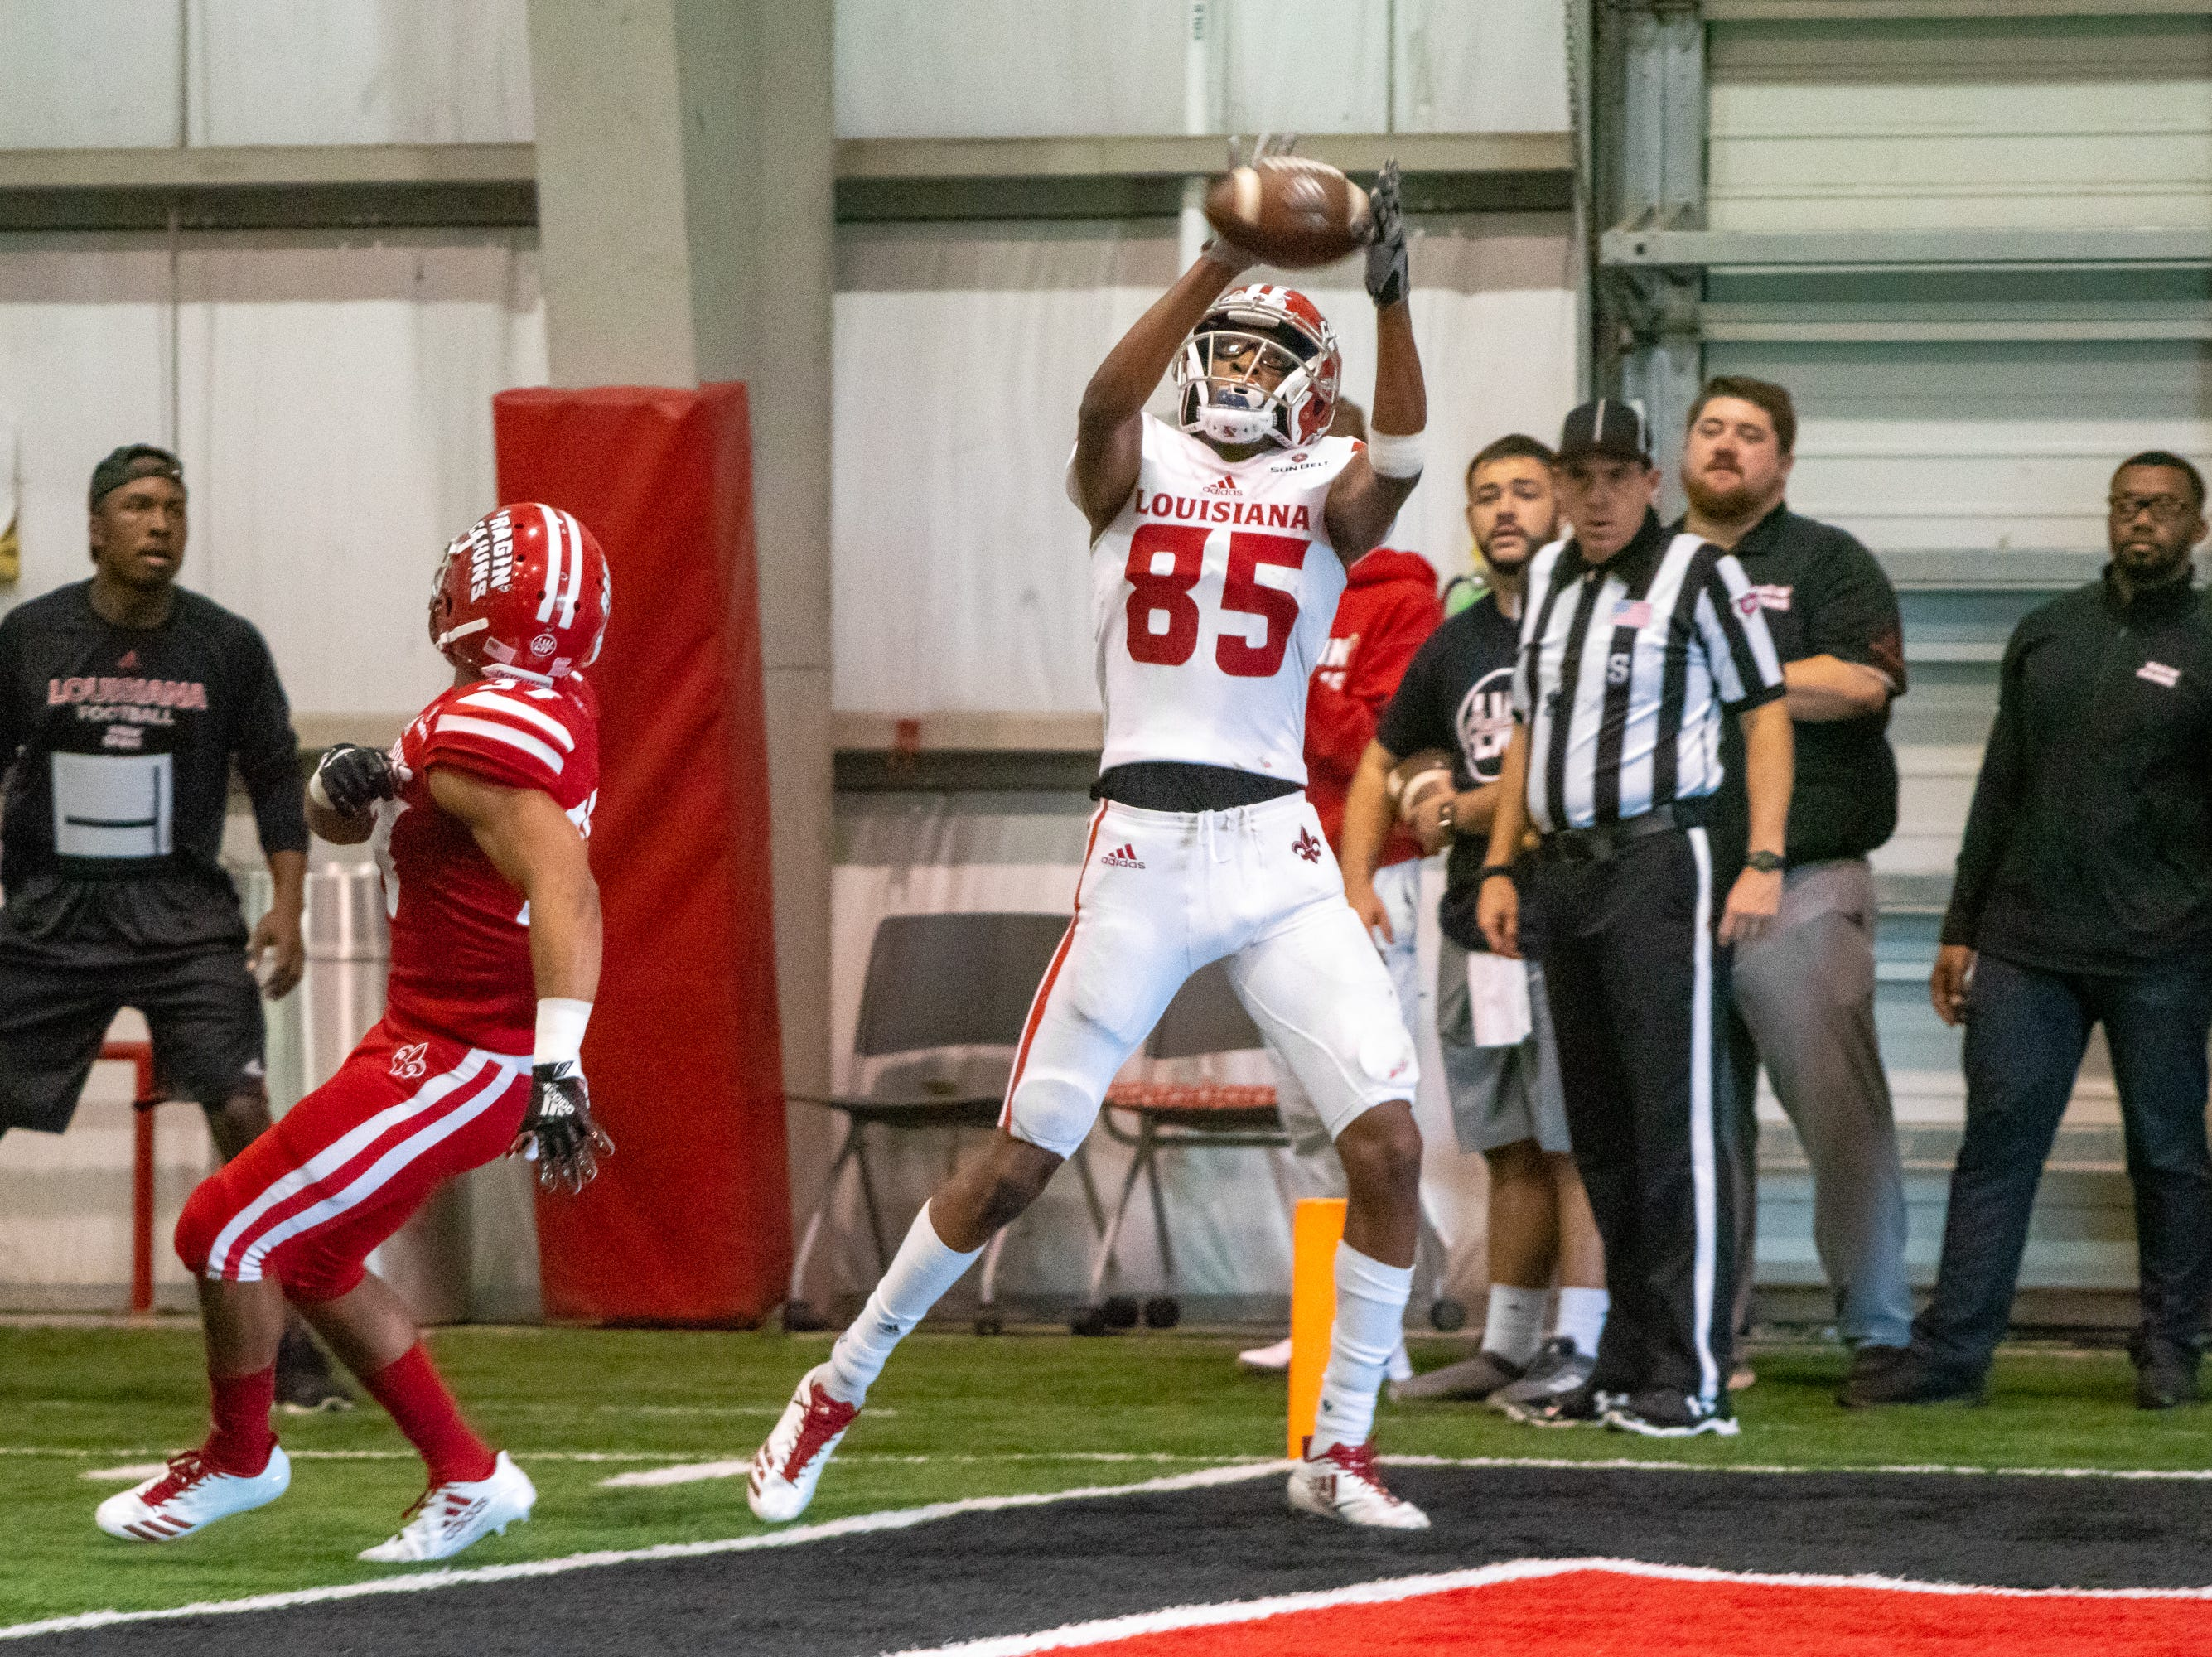 UL's Calif Gossett makes a catch in the endzone to score as the Ragin' Cajuns football team plays their annual Spring football game against one another in the Leon Moncla trainig facility on April 13, 2019.